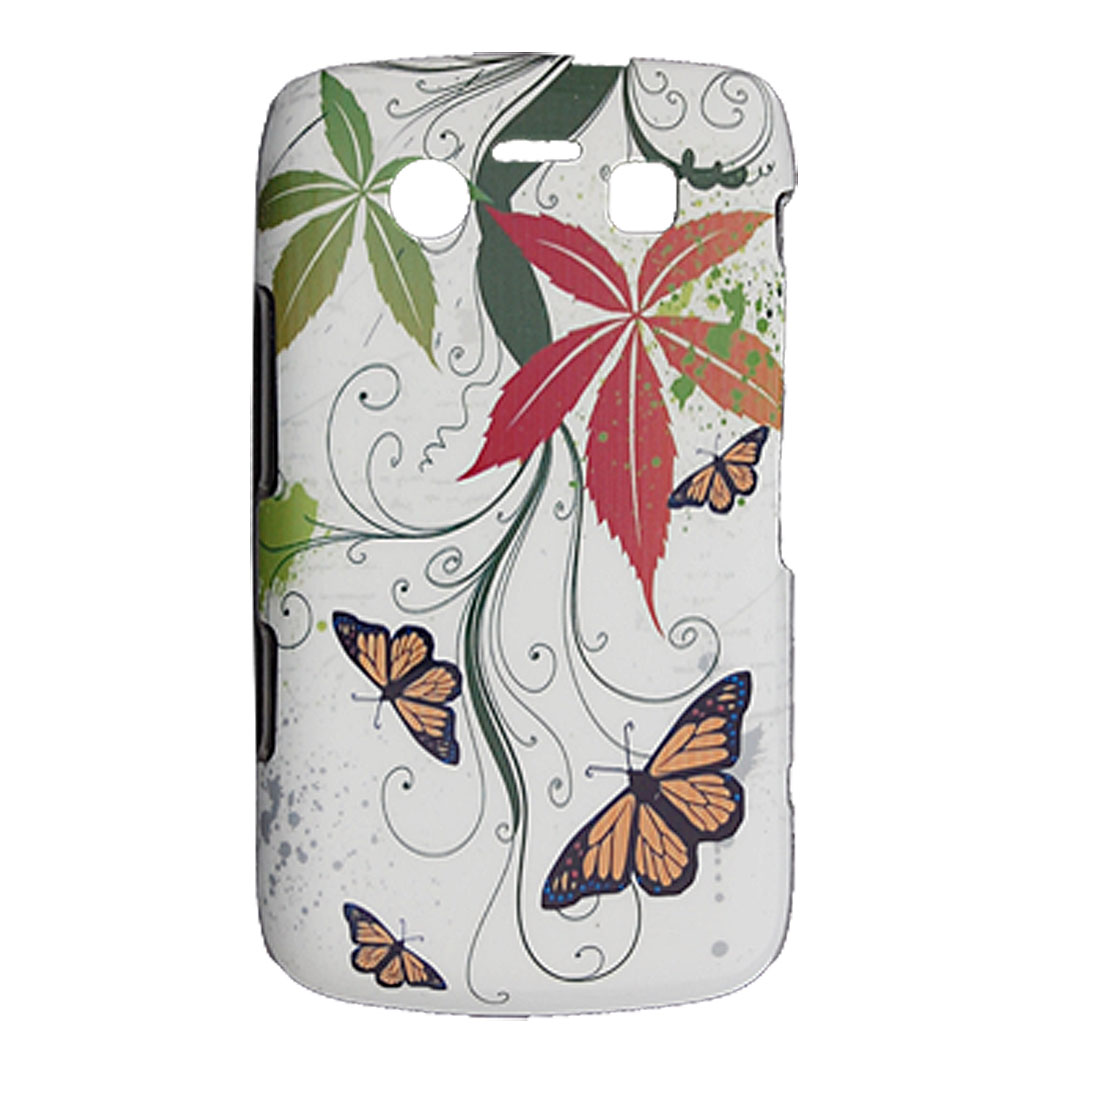 Butterflies Printed Hard Plastic Back Case for Blackberry 9700